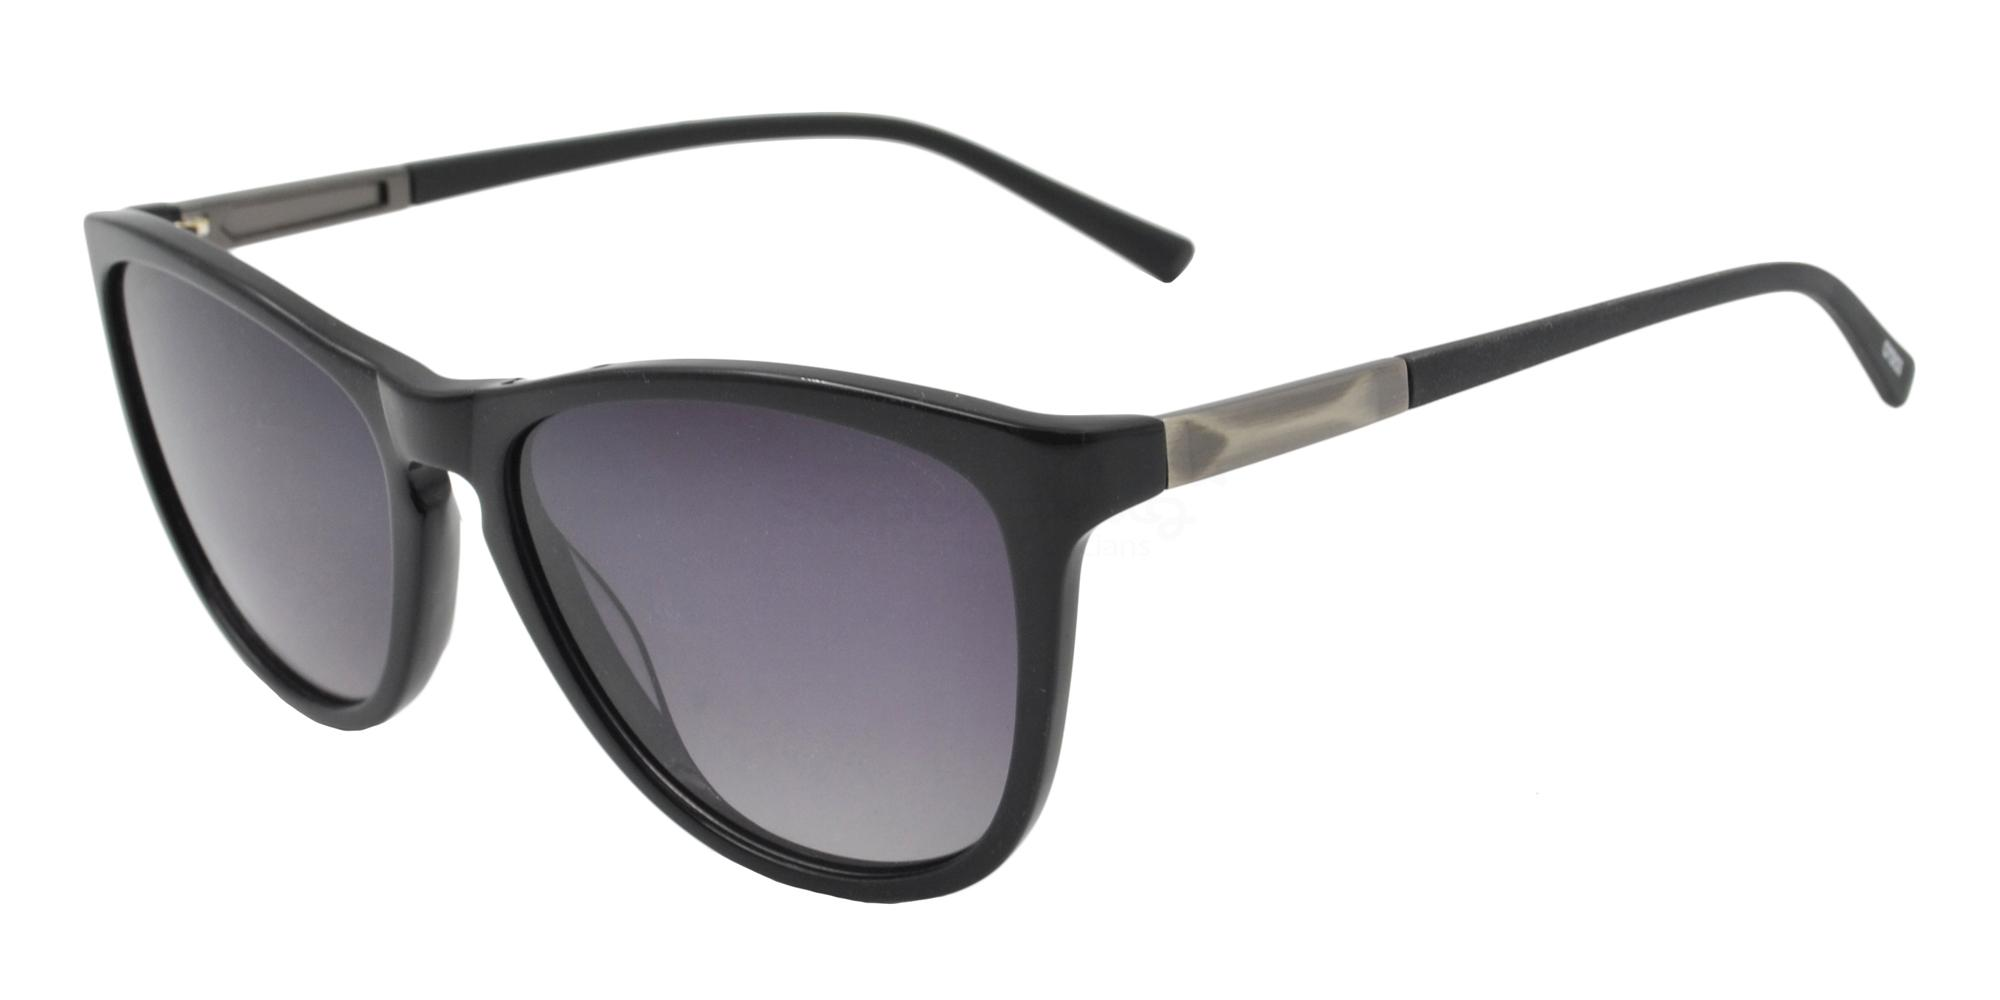 20BK CS040 Sunglasses, Crocs Eyewear